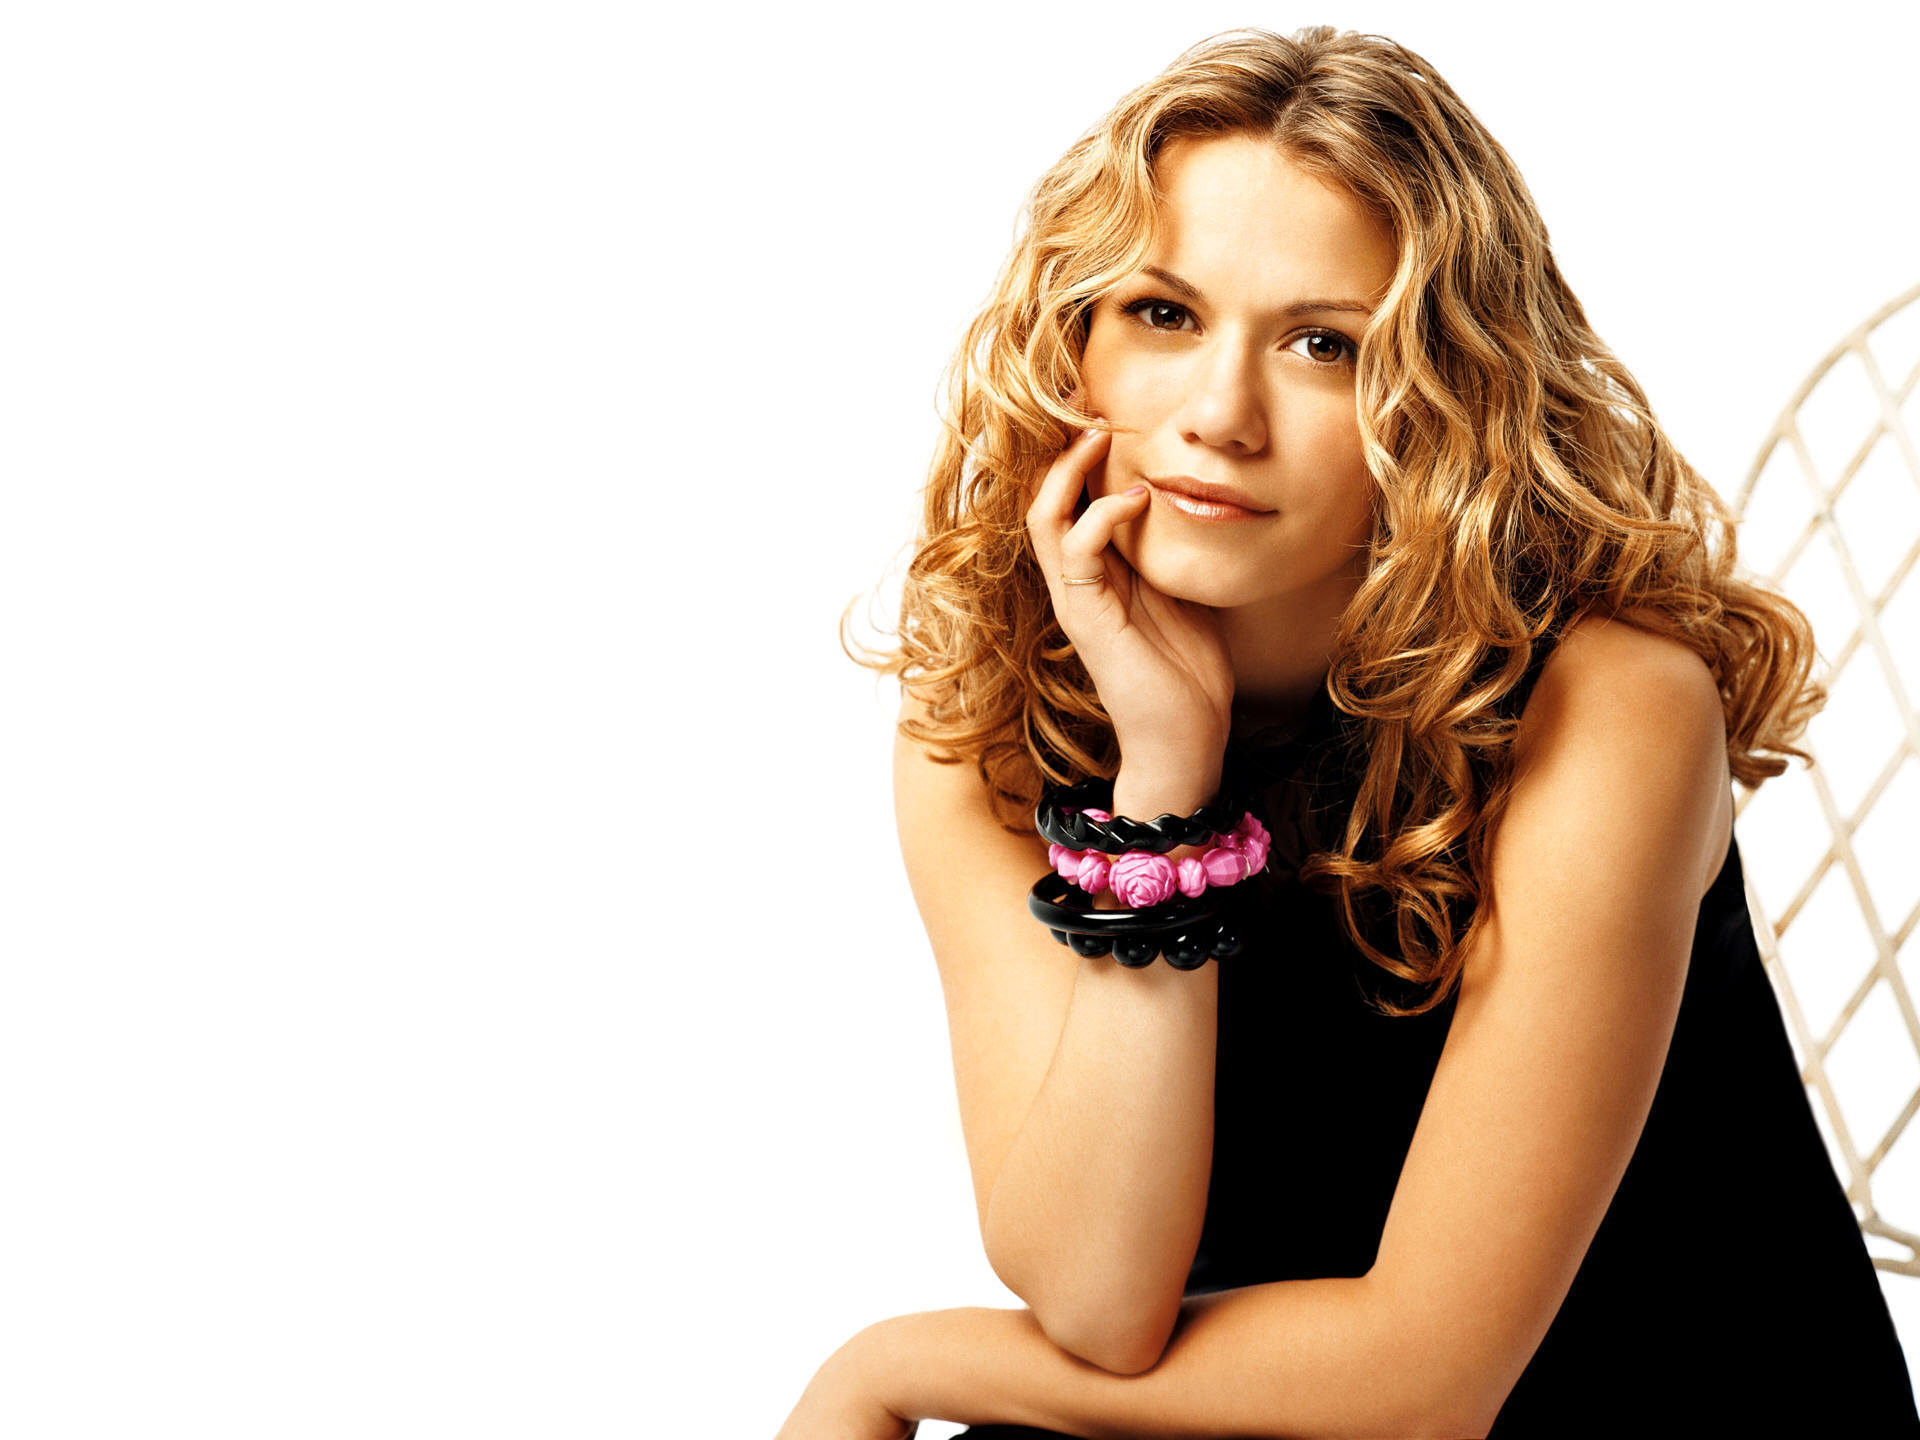 bethany joy lenz images bethany hd wallpaper and background photos